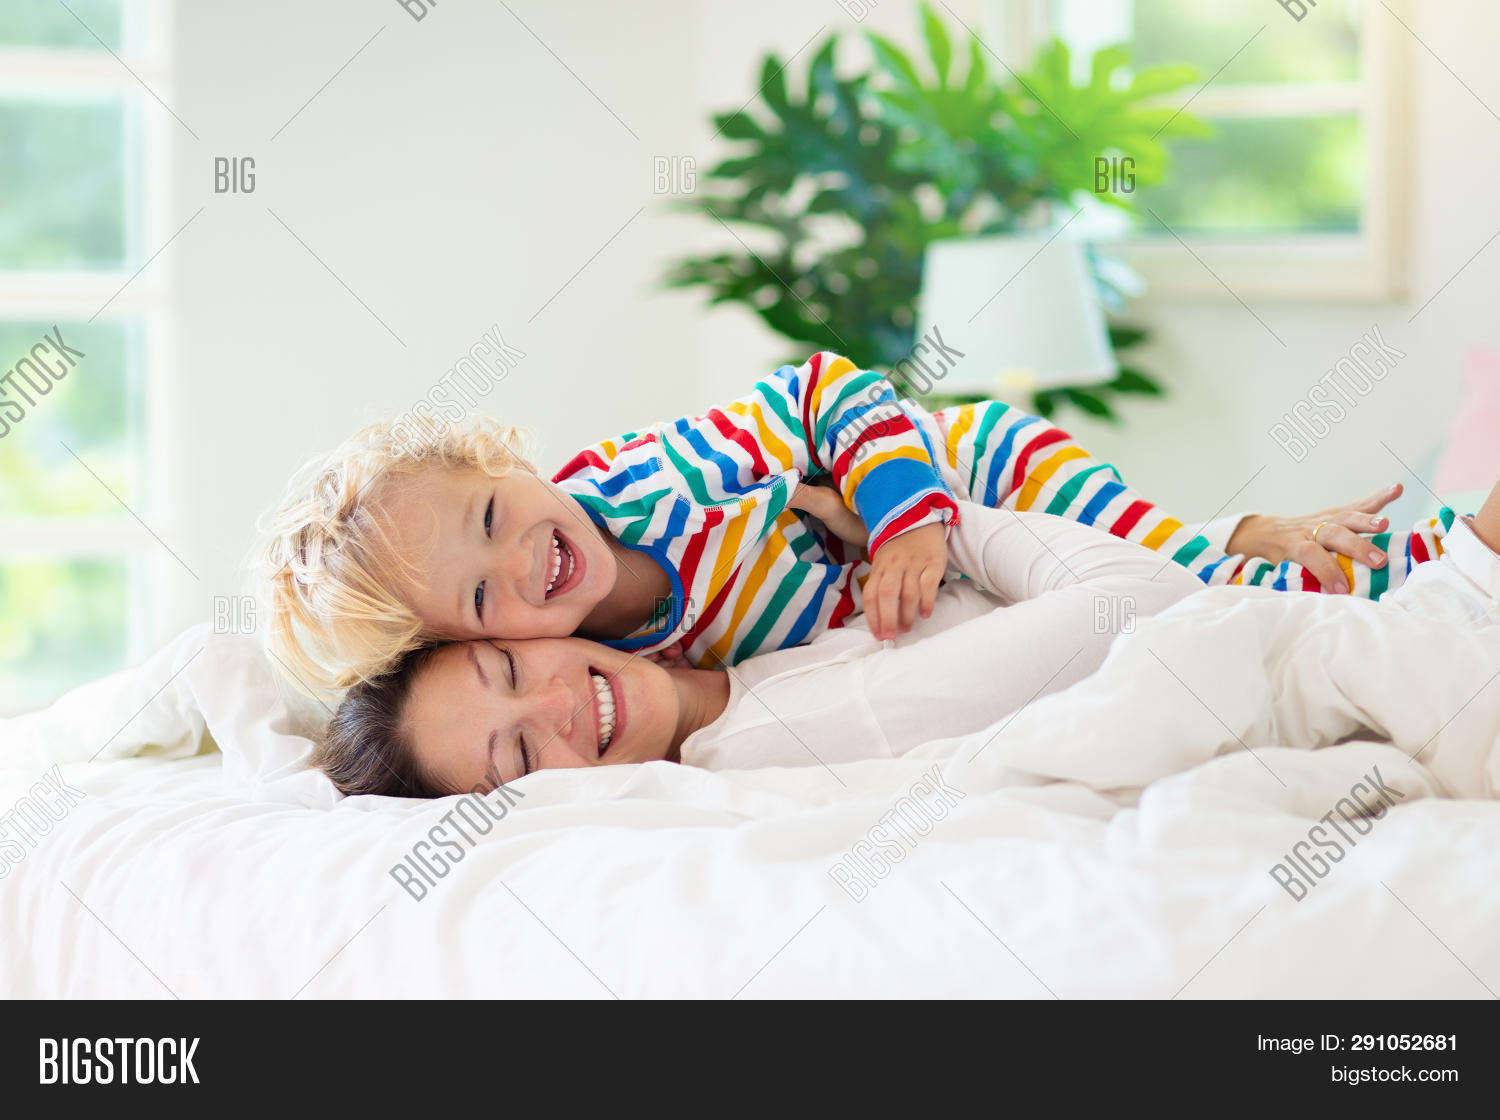 baby,bed,bedding,bedroom,blanket,blond,boy,care,caucasian,child,childhood,children,curly,daughter,day,family,fun,girl,happiness,happy,home,infant,kid,lifestyle,little,love,mom,morning,mother,nap,pajamas,parent,people,pillow,play,playing,room,sleep,sleeping,sleepwear,small,son,textile,tickle,wear,white,window,woman,yawn,young